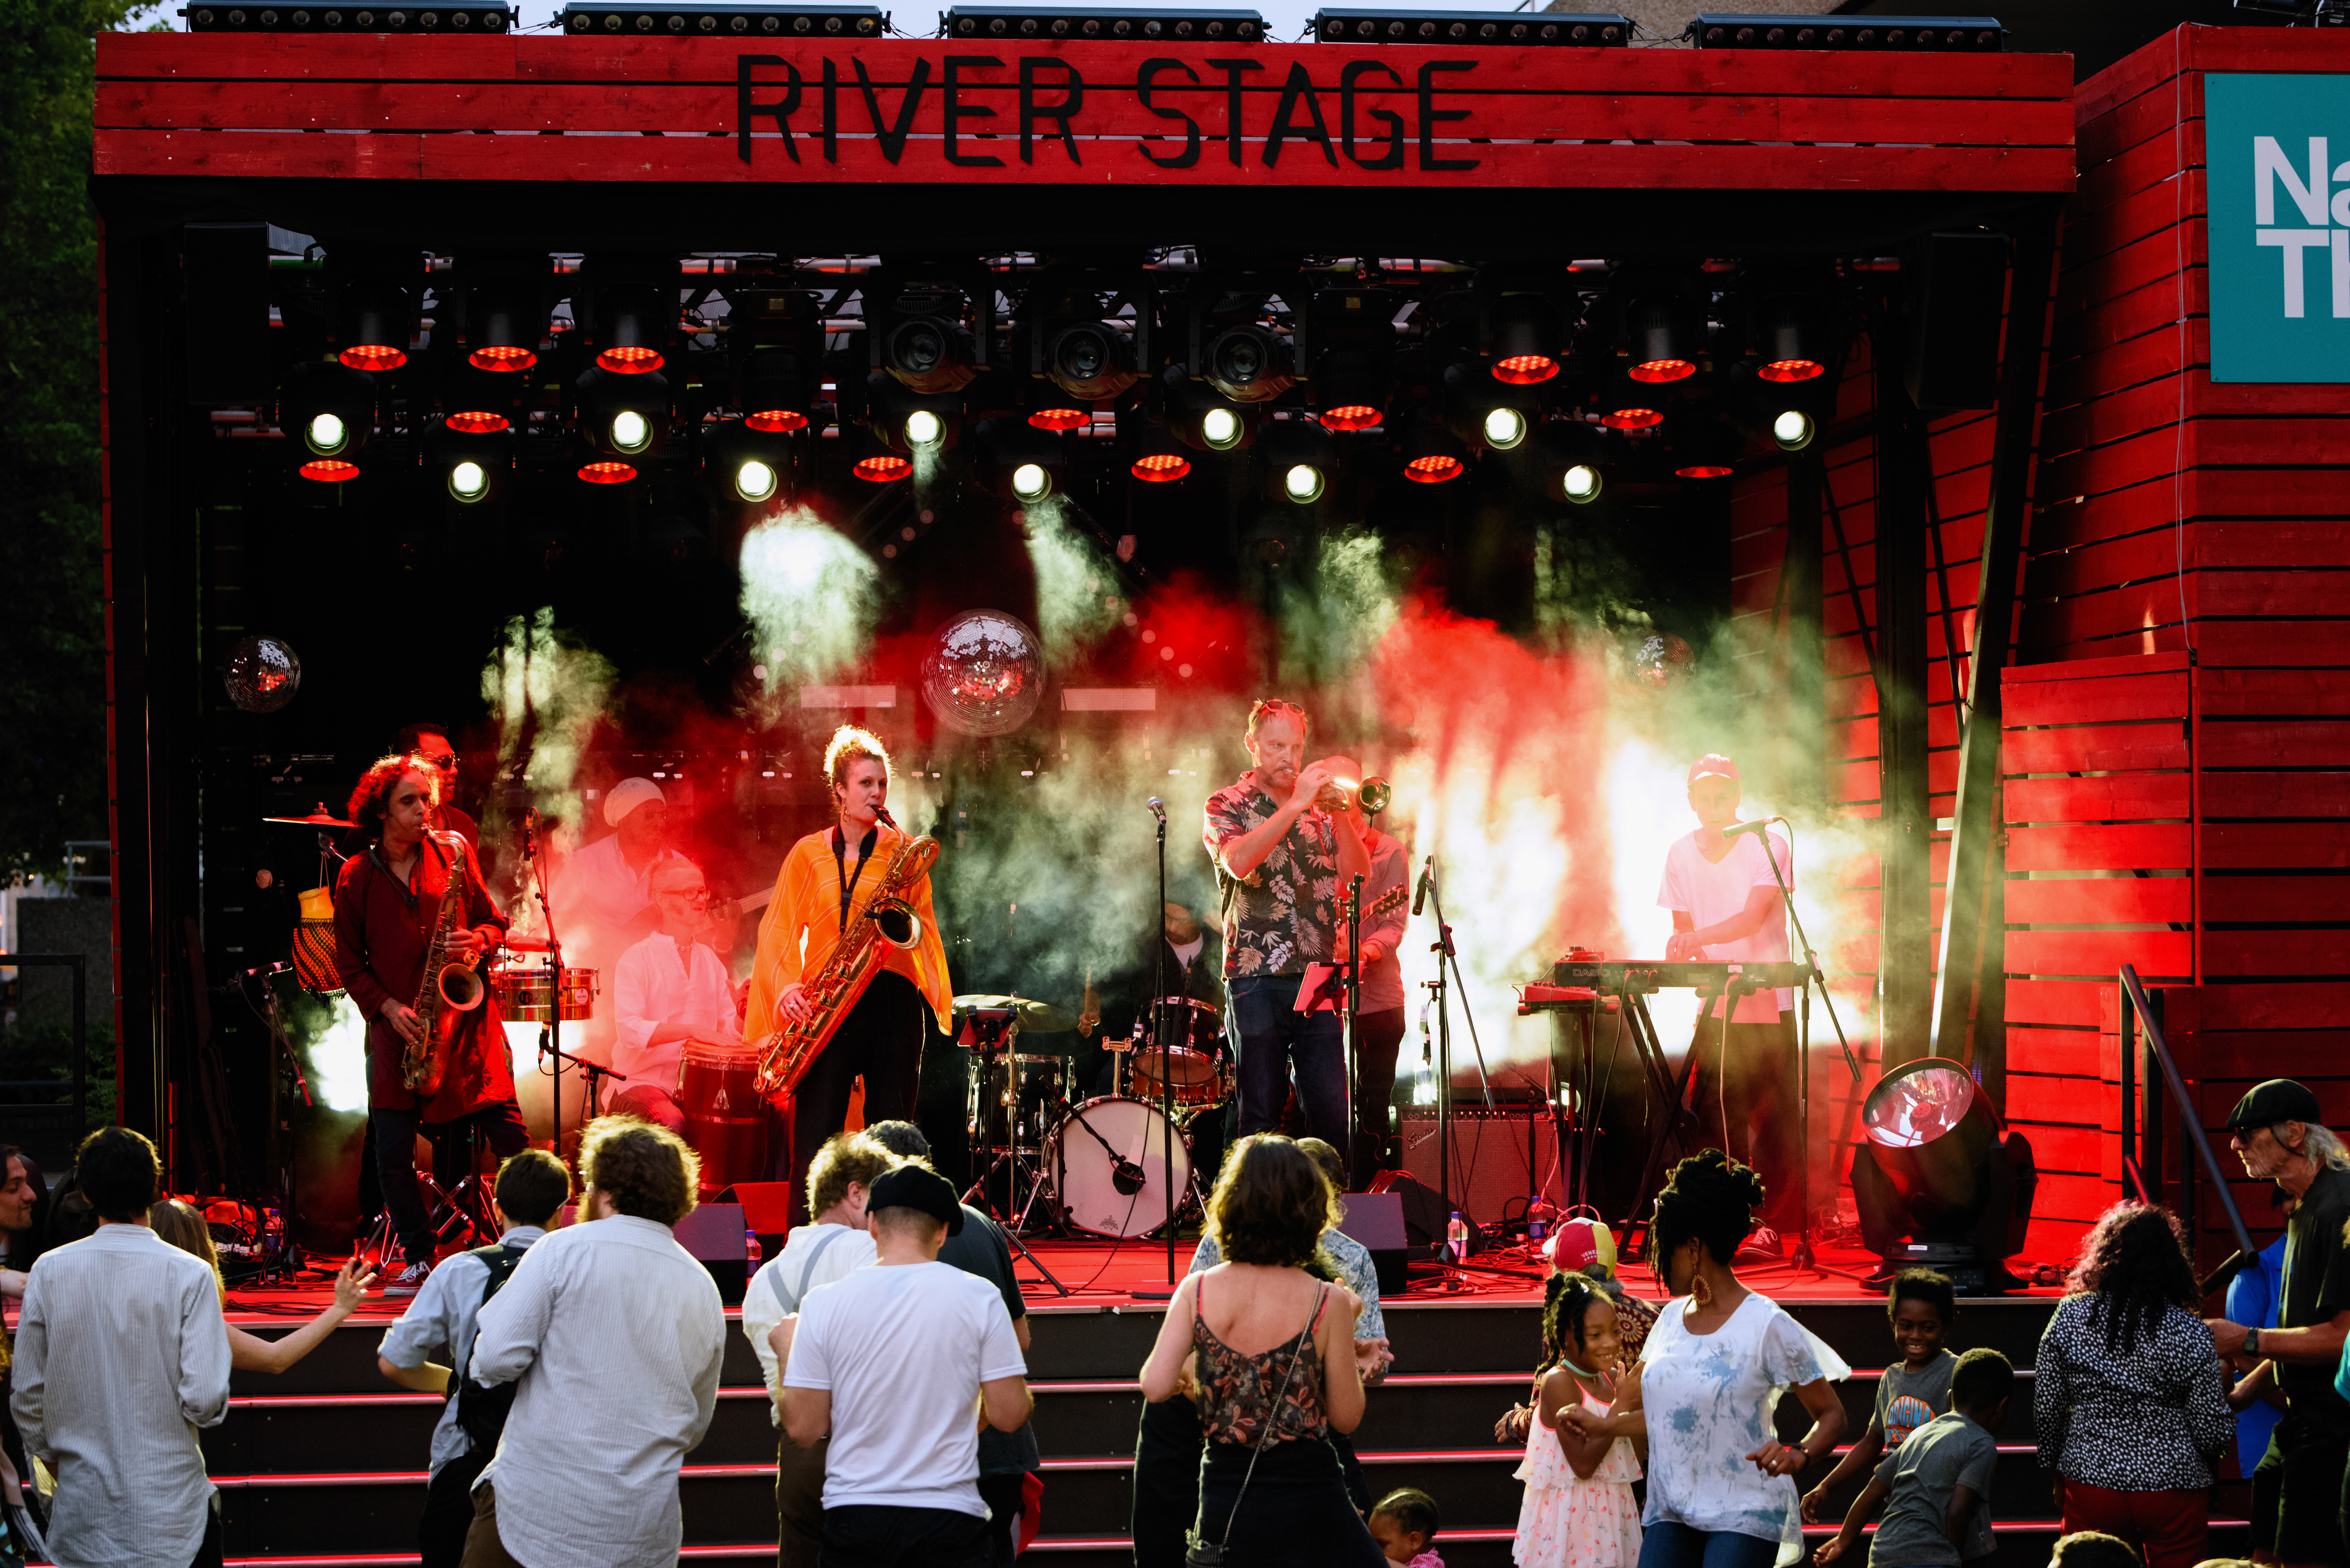 River Stage